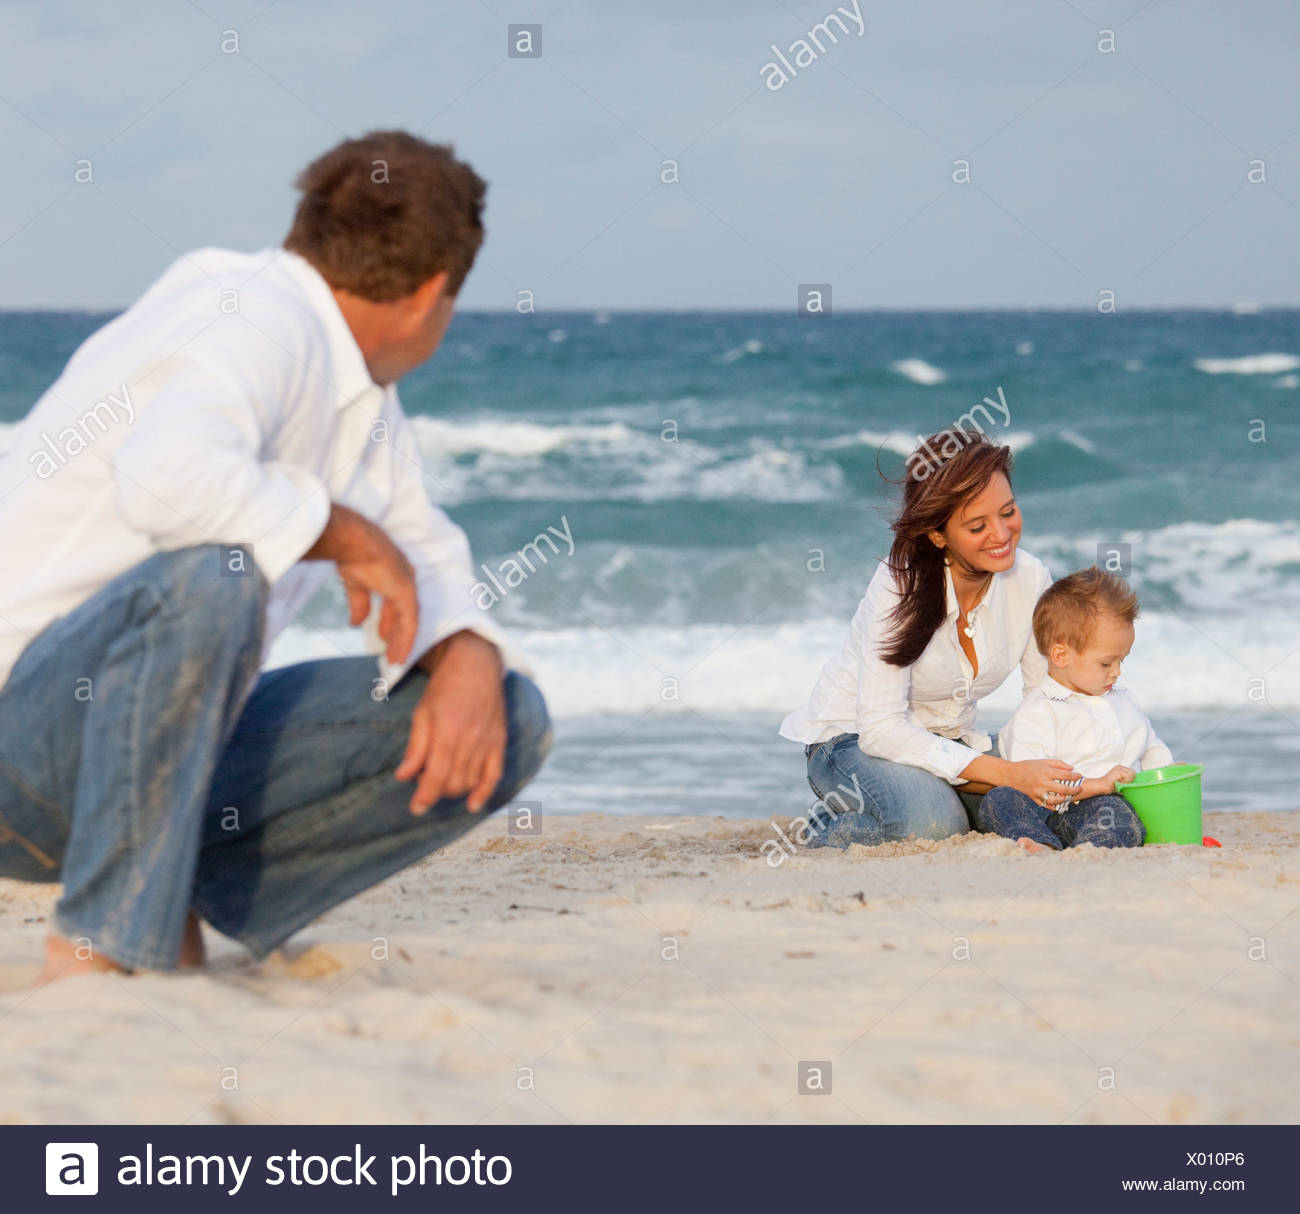 Fort Lauderdale, Florida, United States Of America; A Man Watching His Family On The Beach - Stock Image